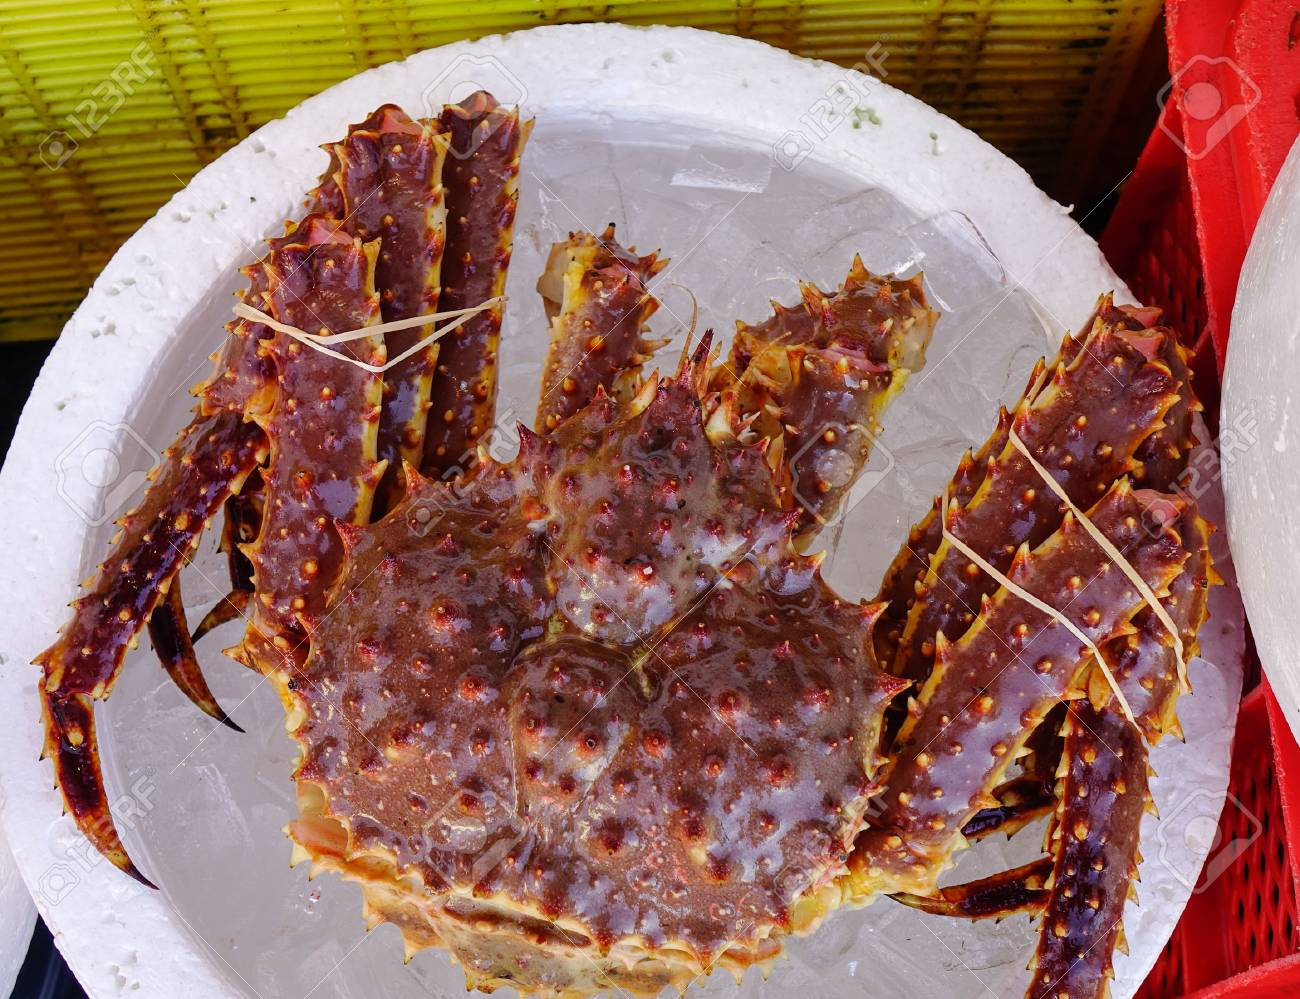 King Crab with ice for sale at Asaichi Market  Morning Fish Market